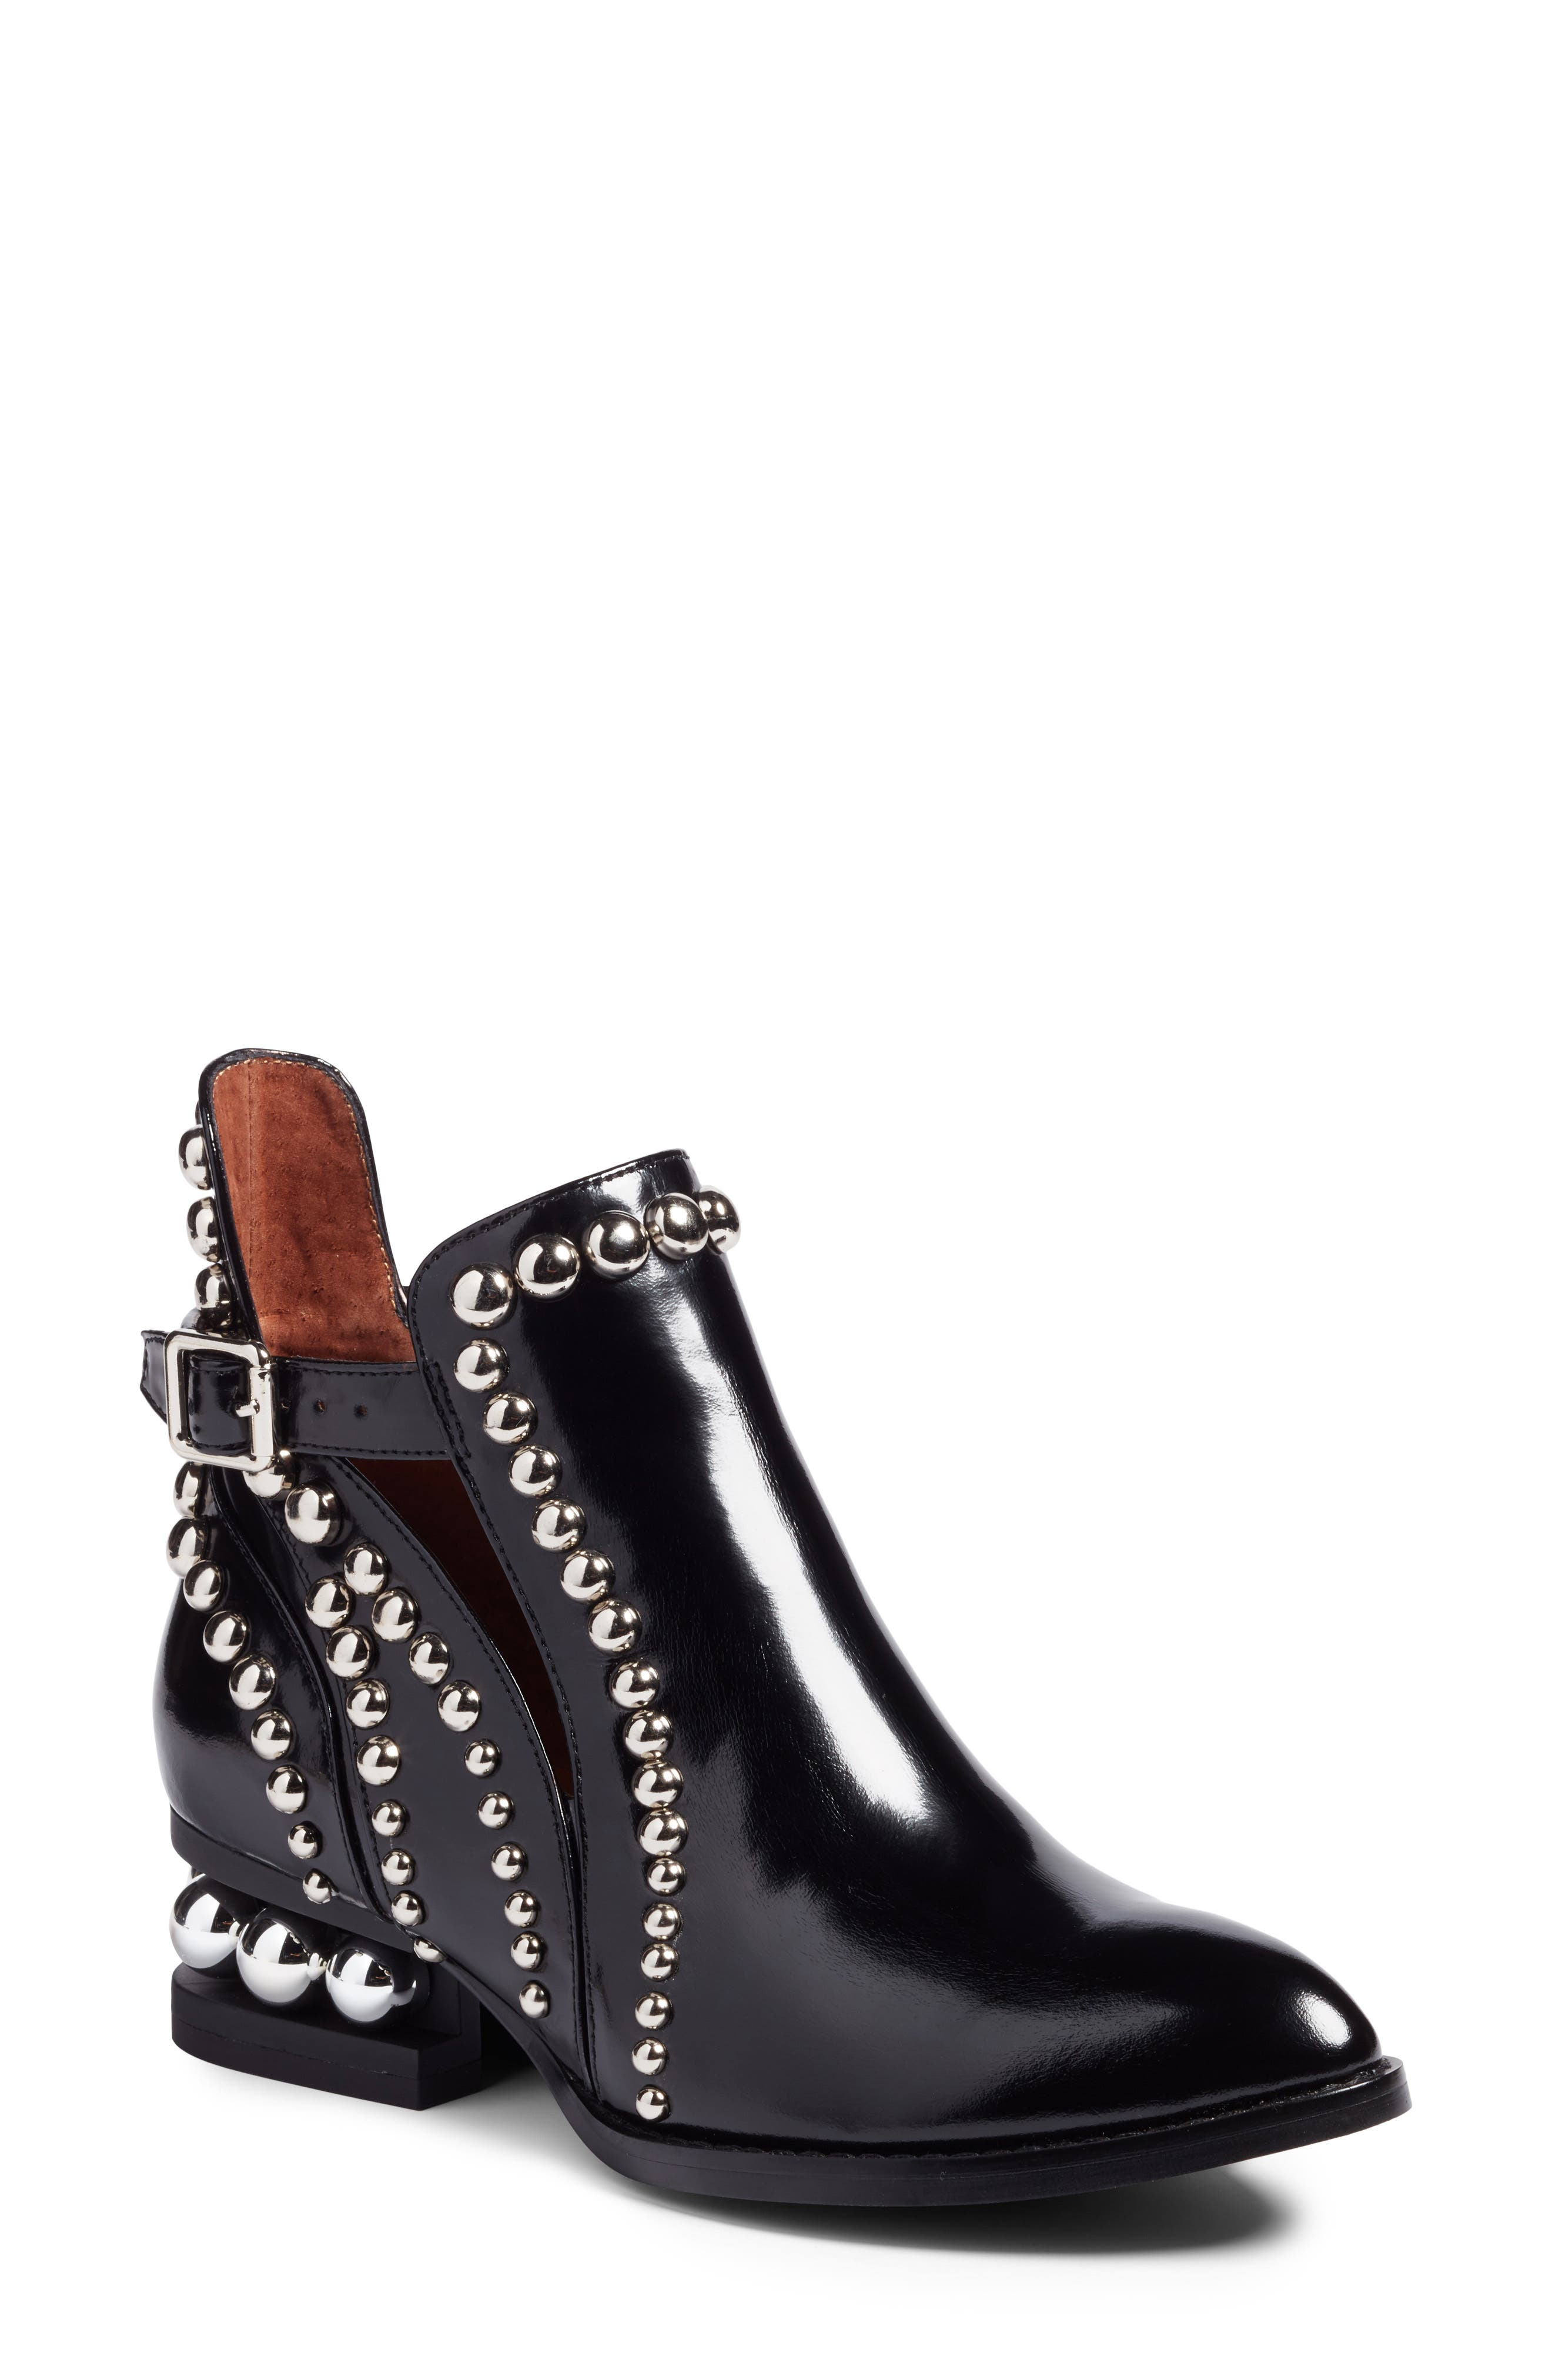 Rylance Studded Bootie,                             Main thumbnail 1, color,                             BLACK BOX SILVER LEATHER